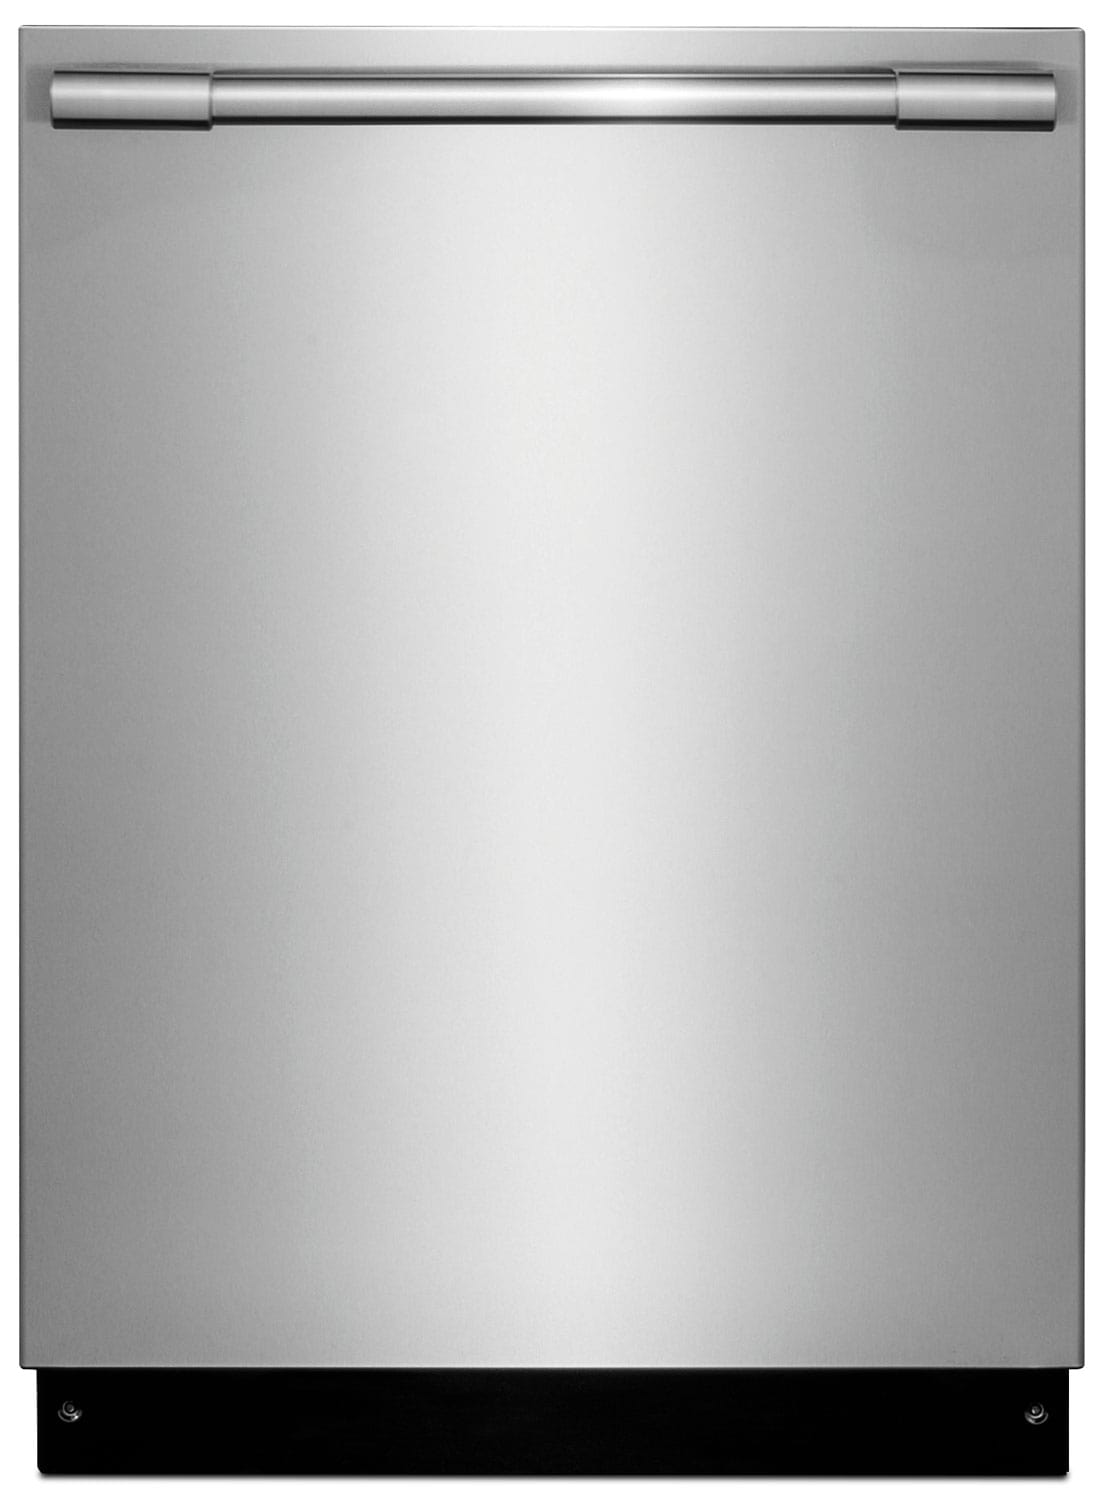 "Frigidaire® Professional® 24"" Built-In Dishwasher - Stainless Steel"